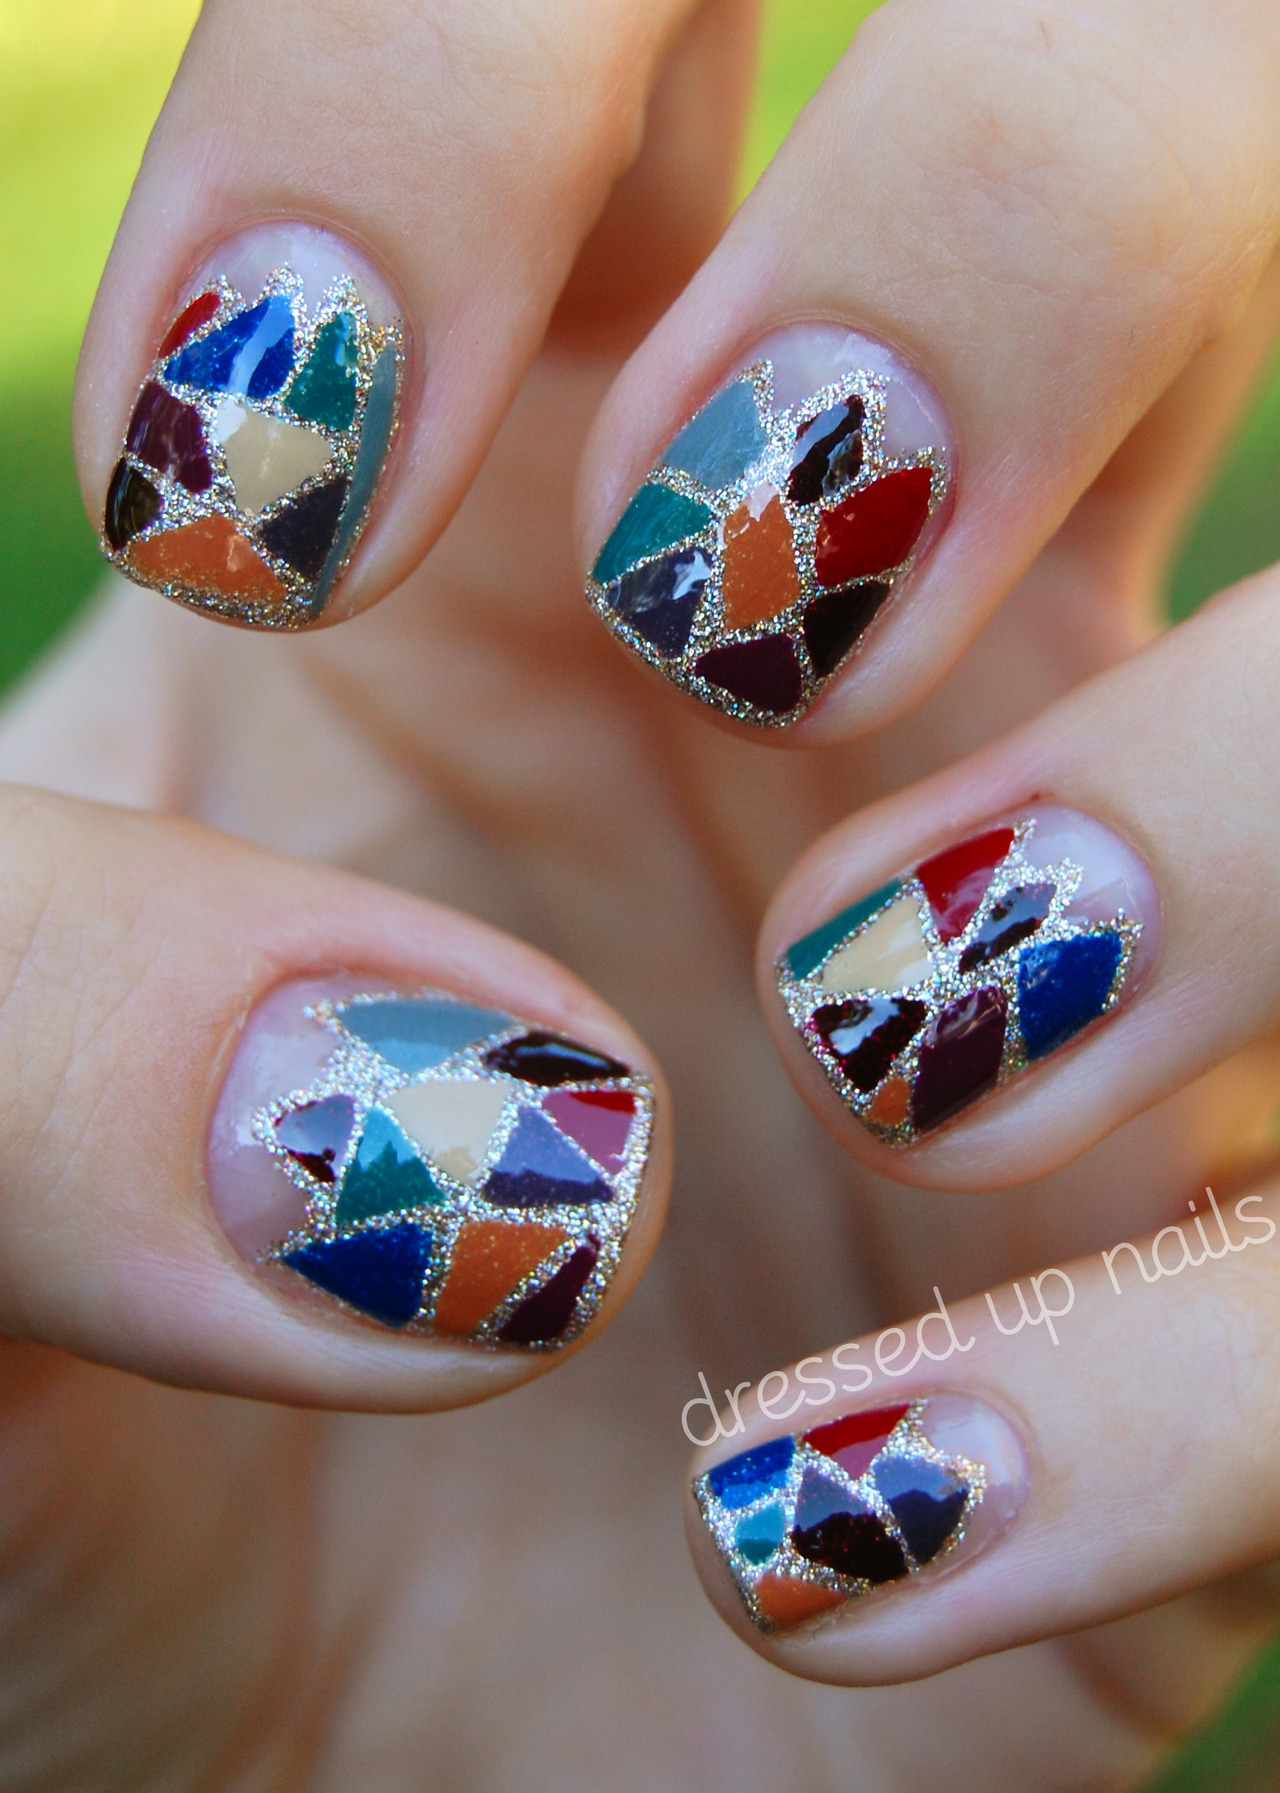 China Glaze on Safari nail art by dressedupnails